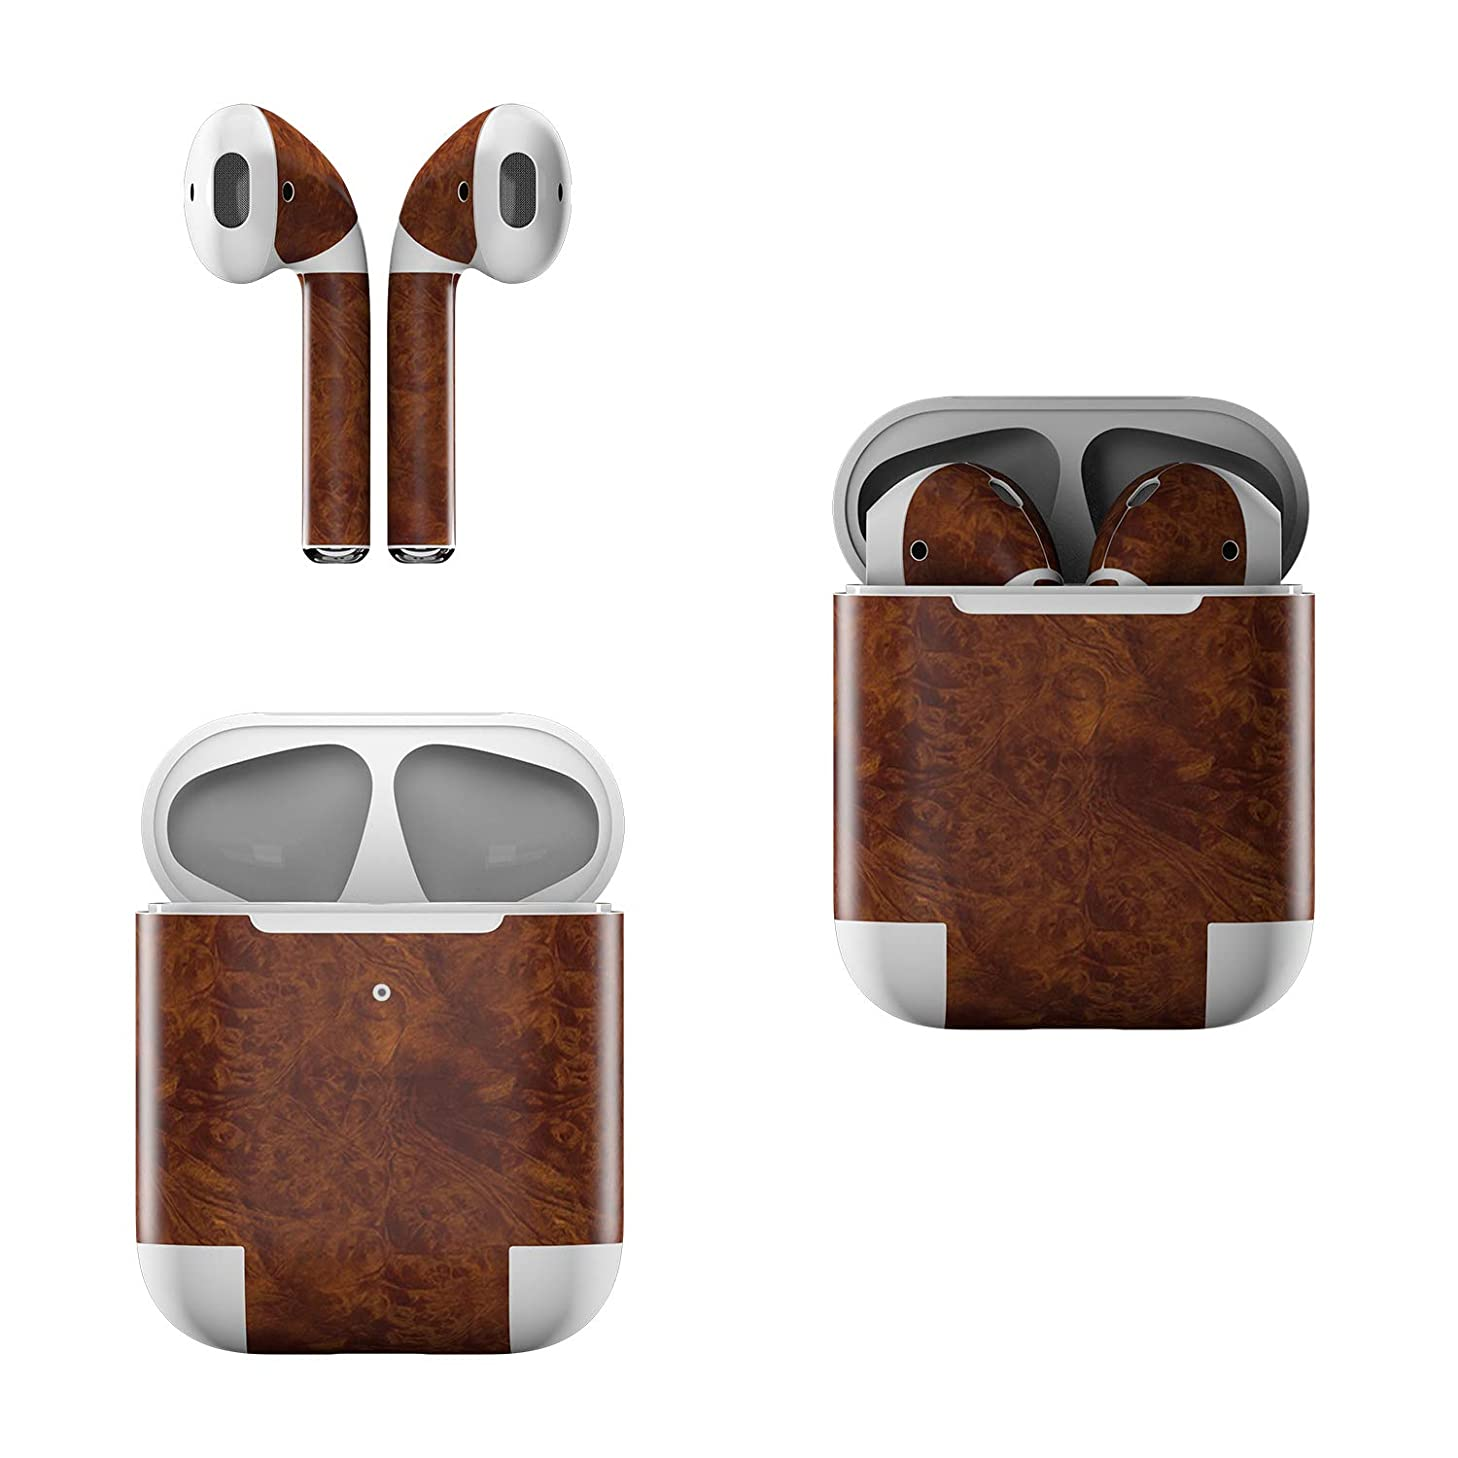 Skin Decals for Apple AirPods - Dark Burlwood - Sticker Wrap Fits 1st and 2nd Generation